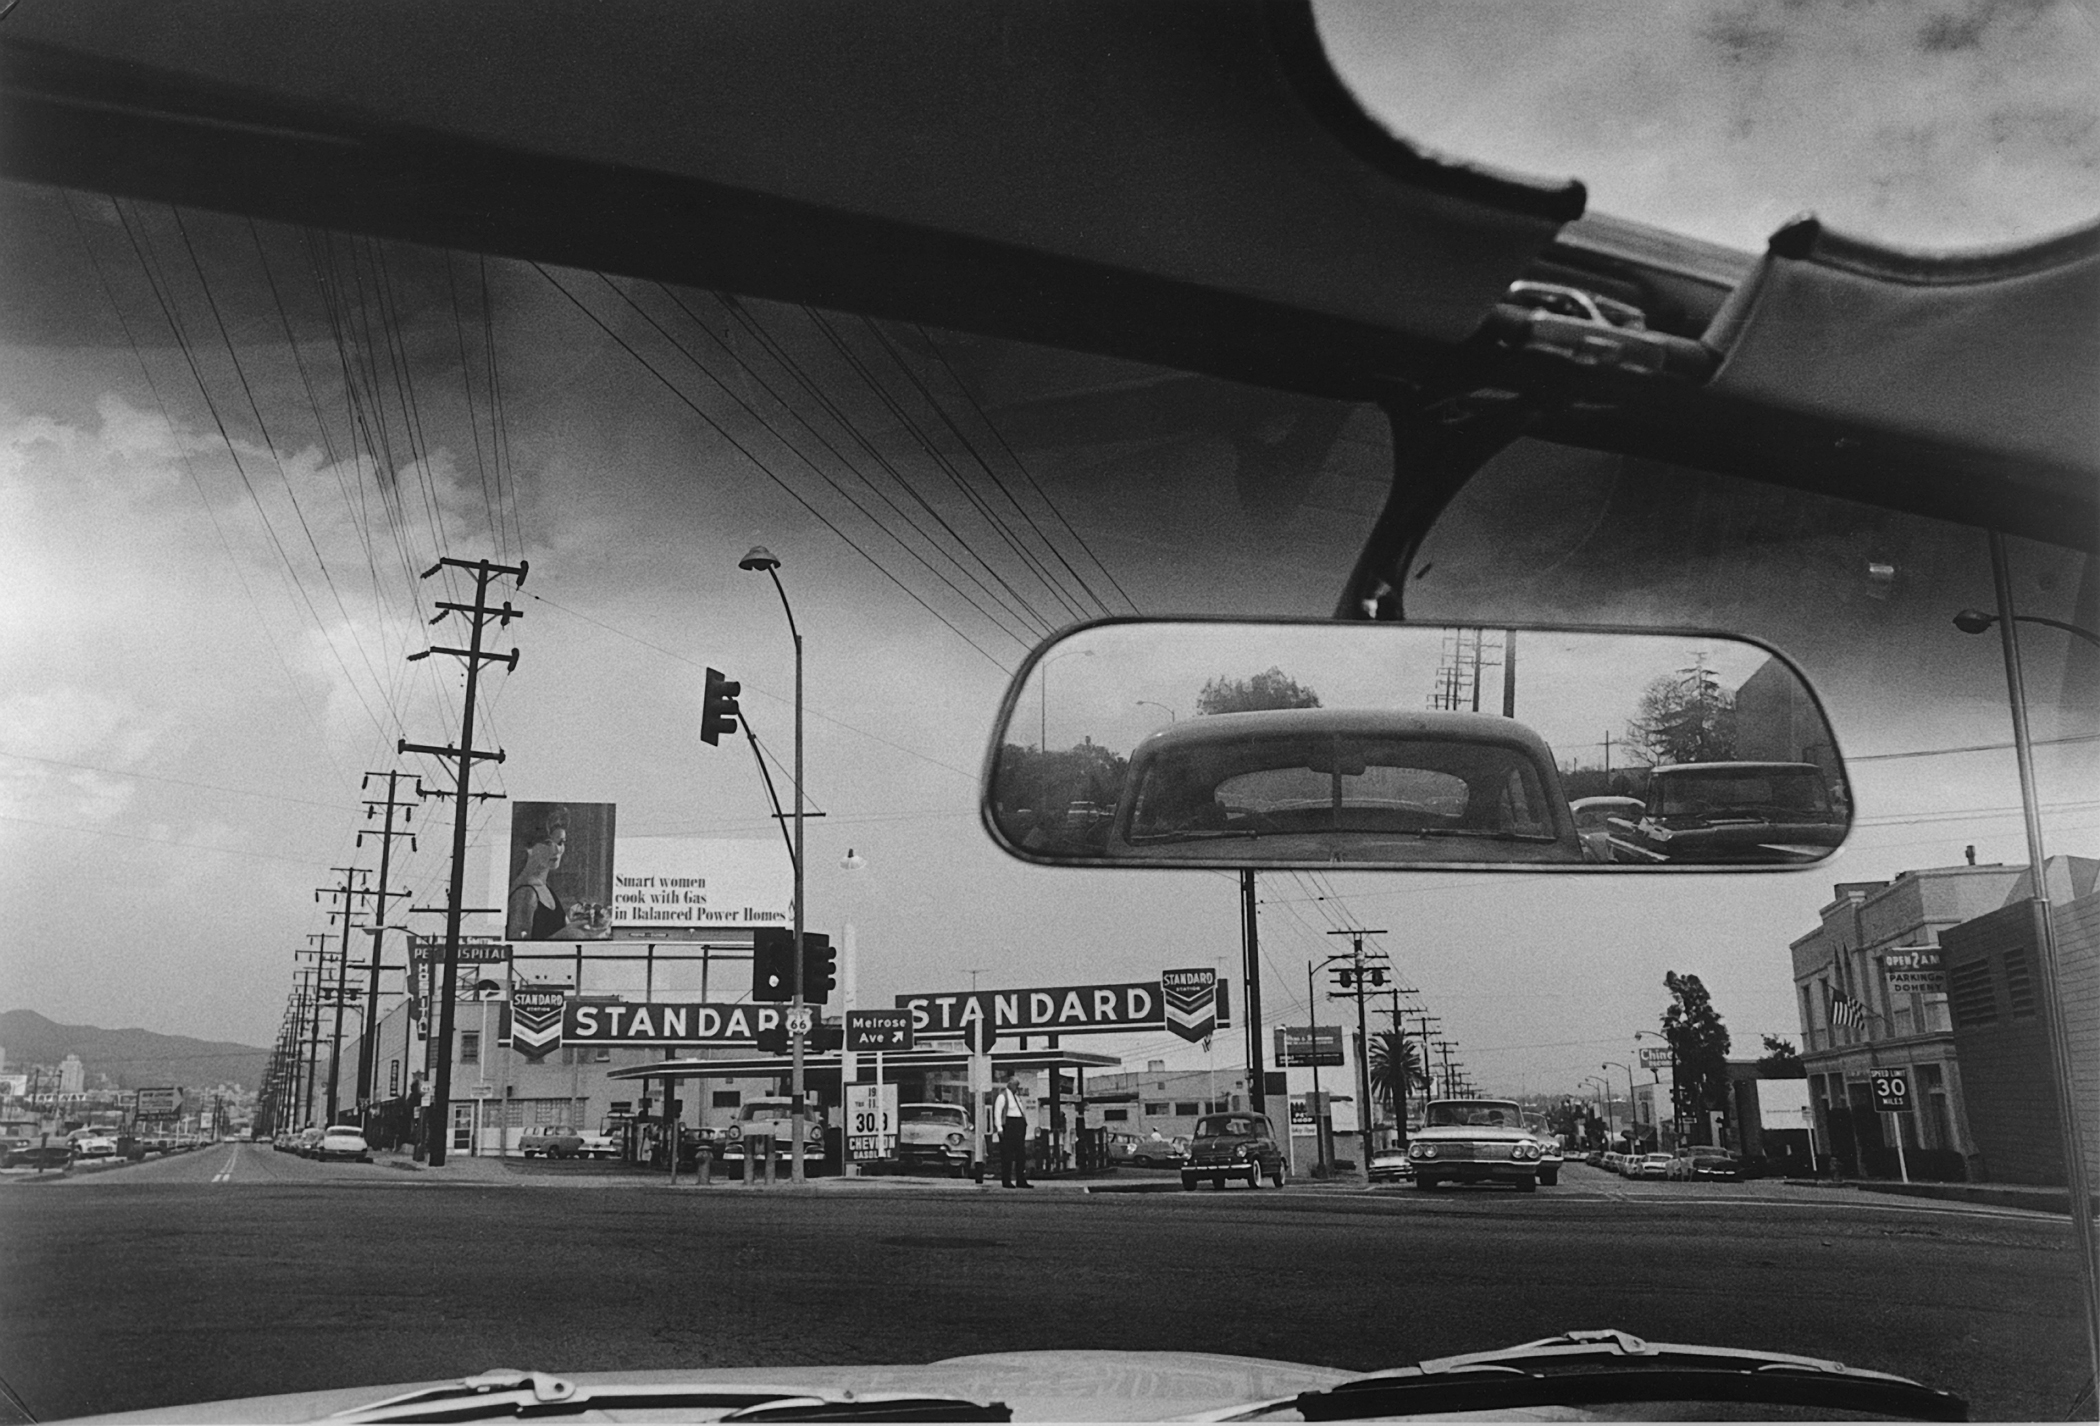 Review of Road Trip: Photography of the American West